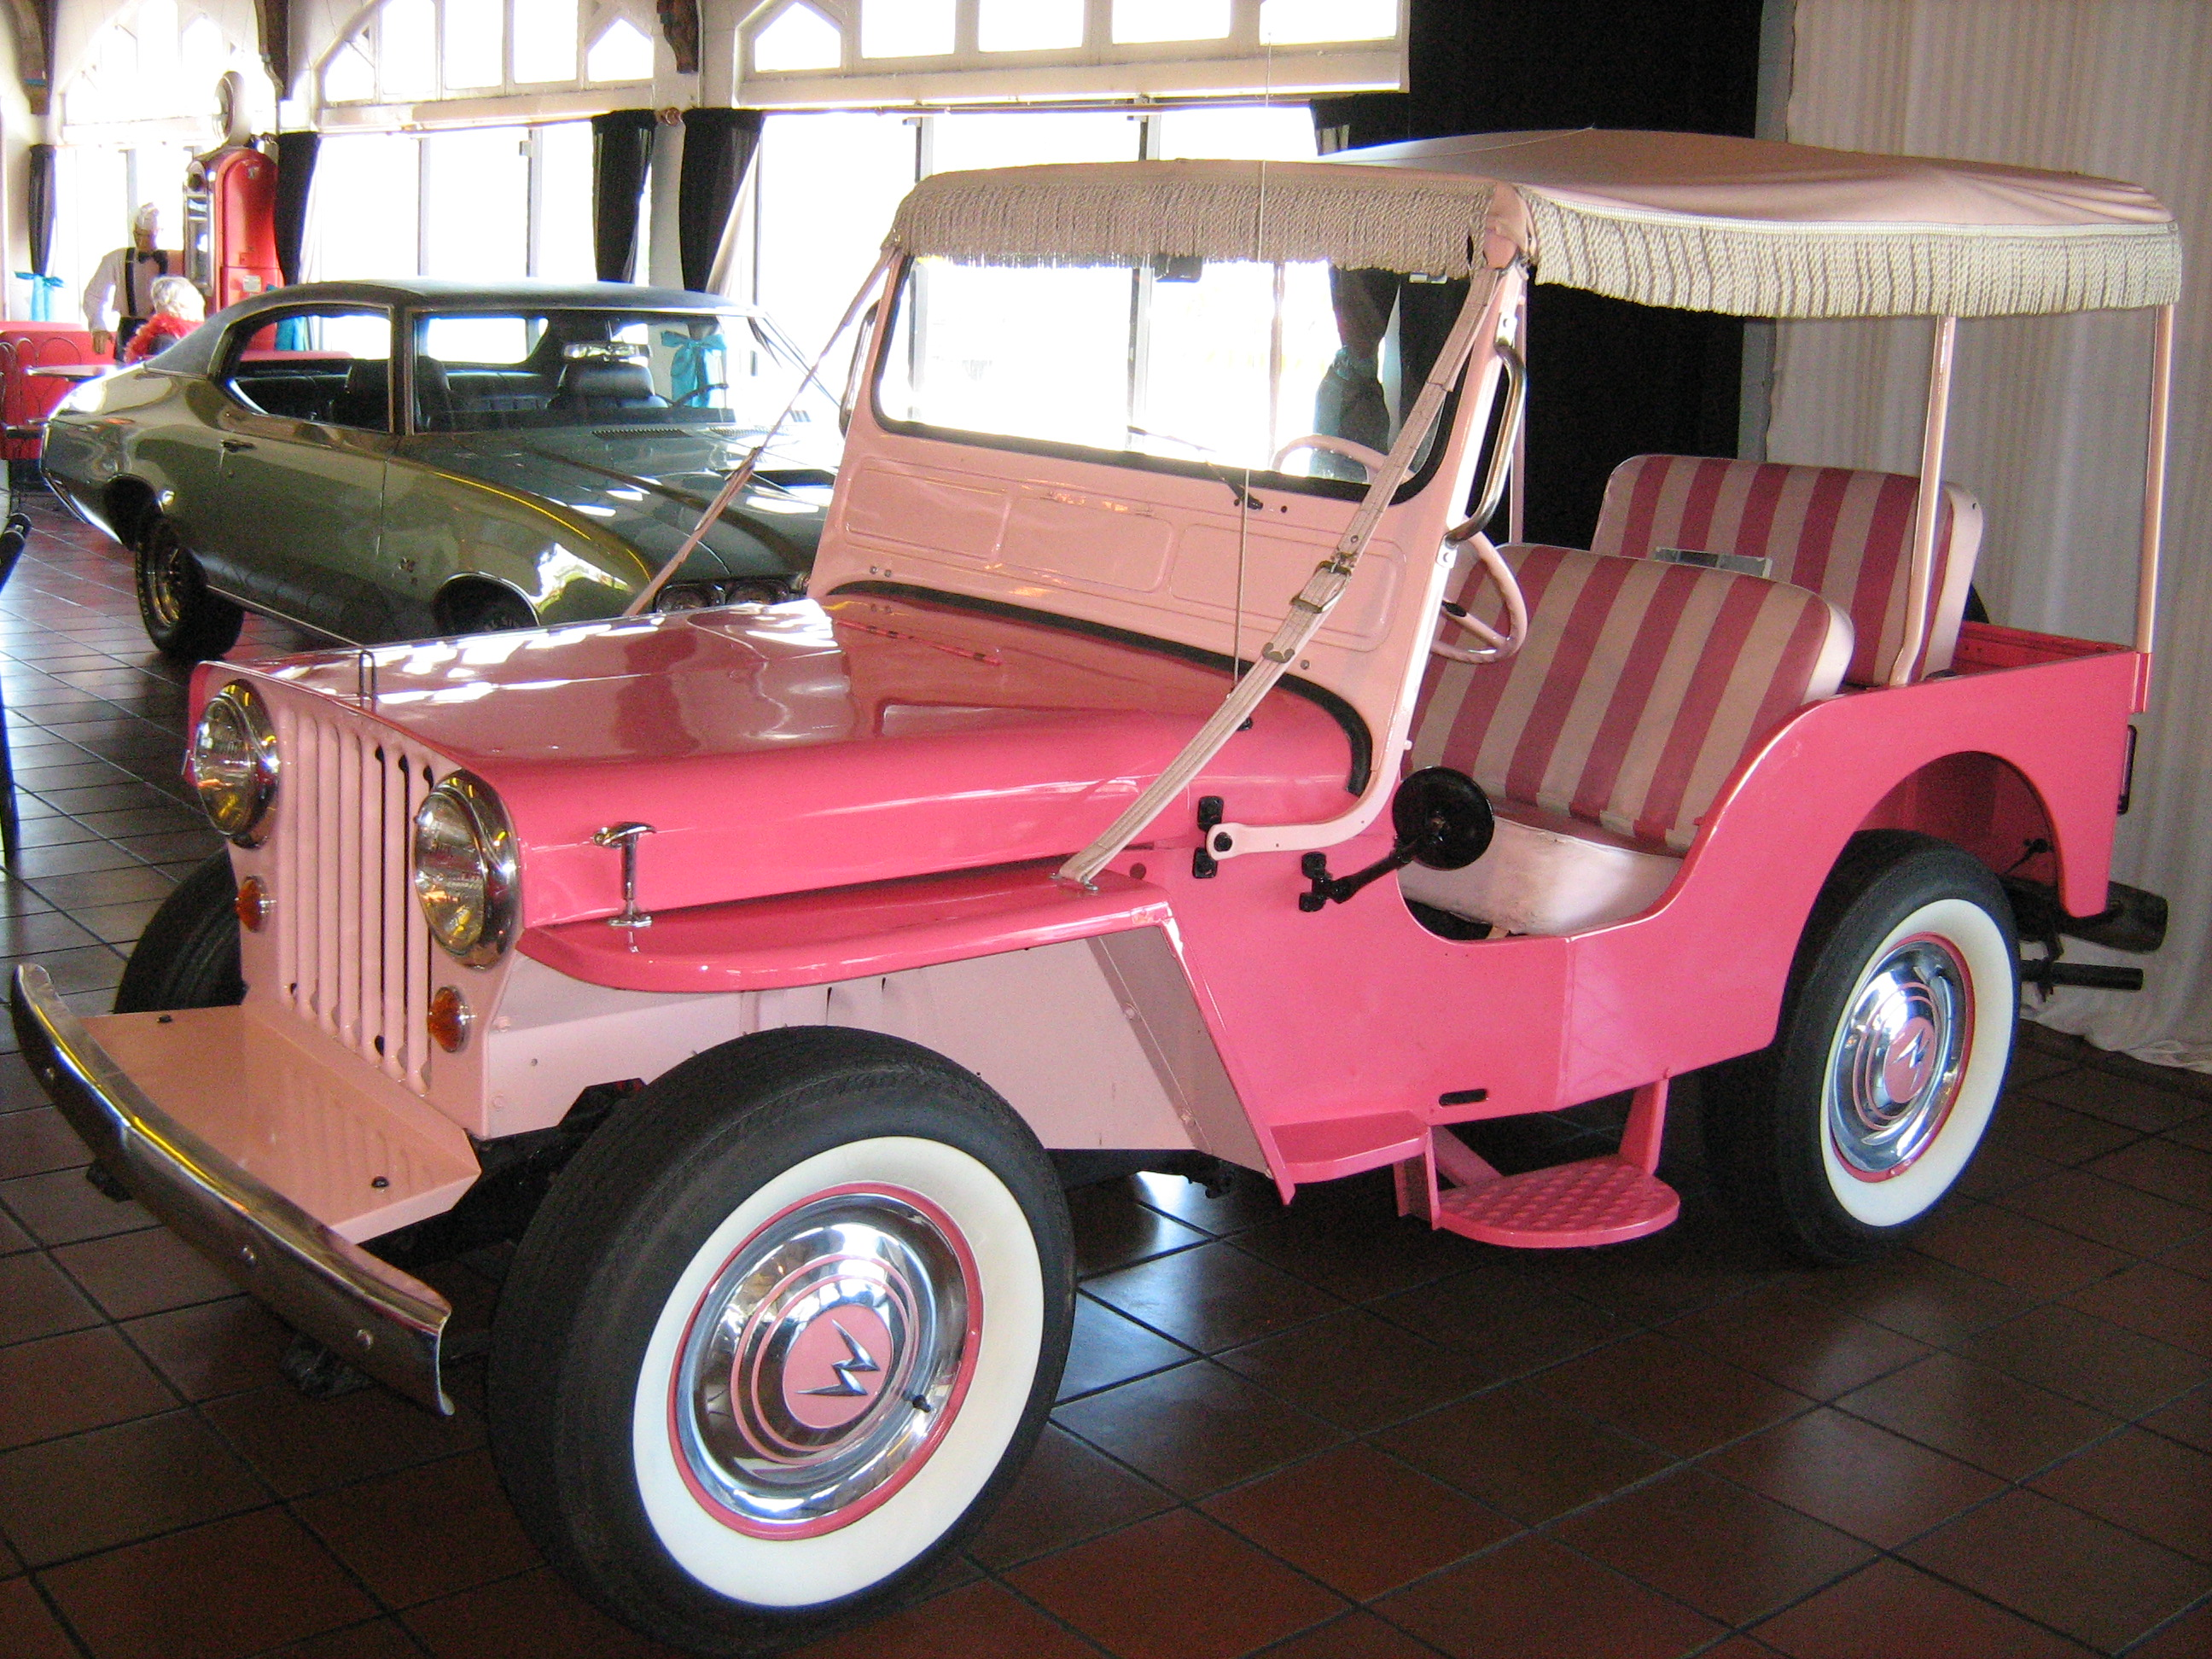 1965 Willys_Jeep_Gala_Surrey_pink jeep dj wikipedia  at fashall.co